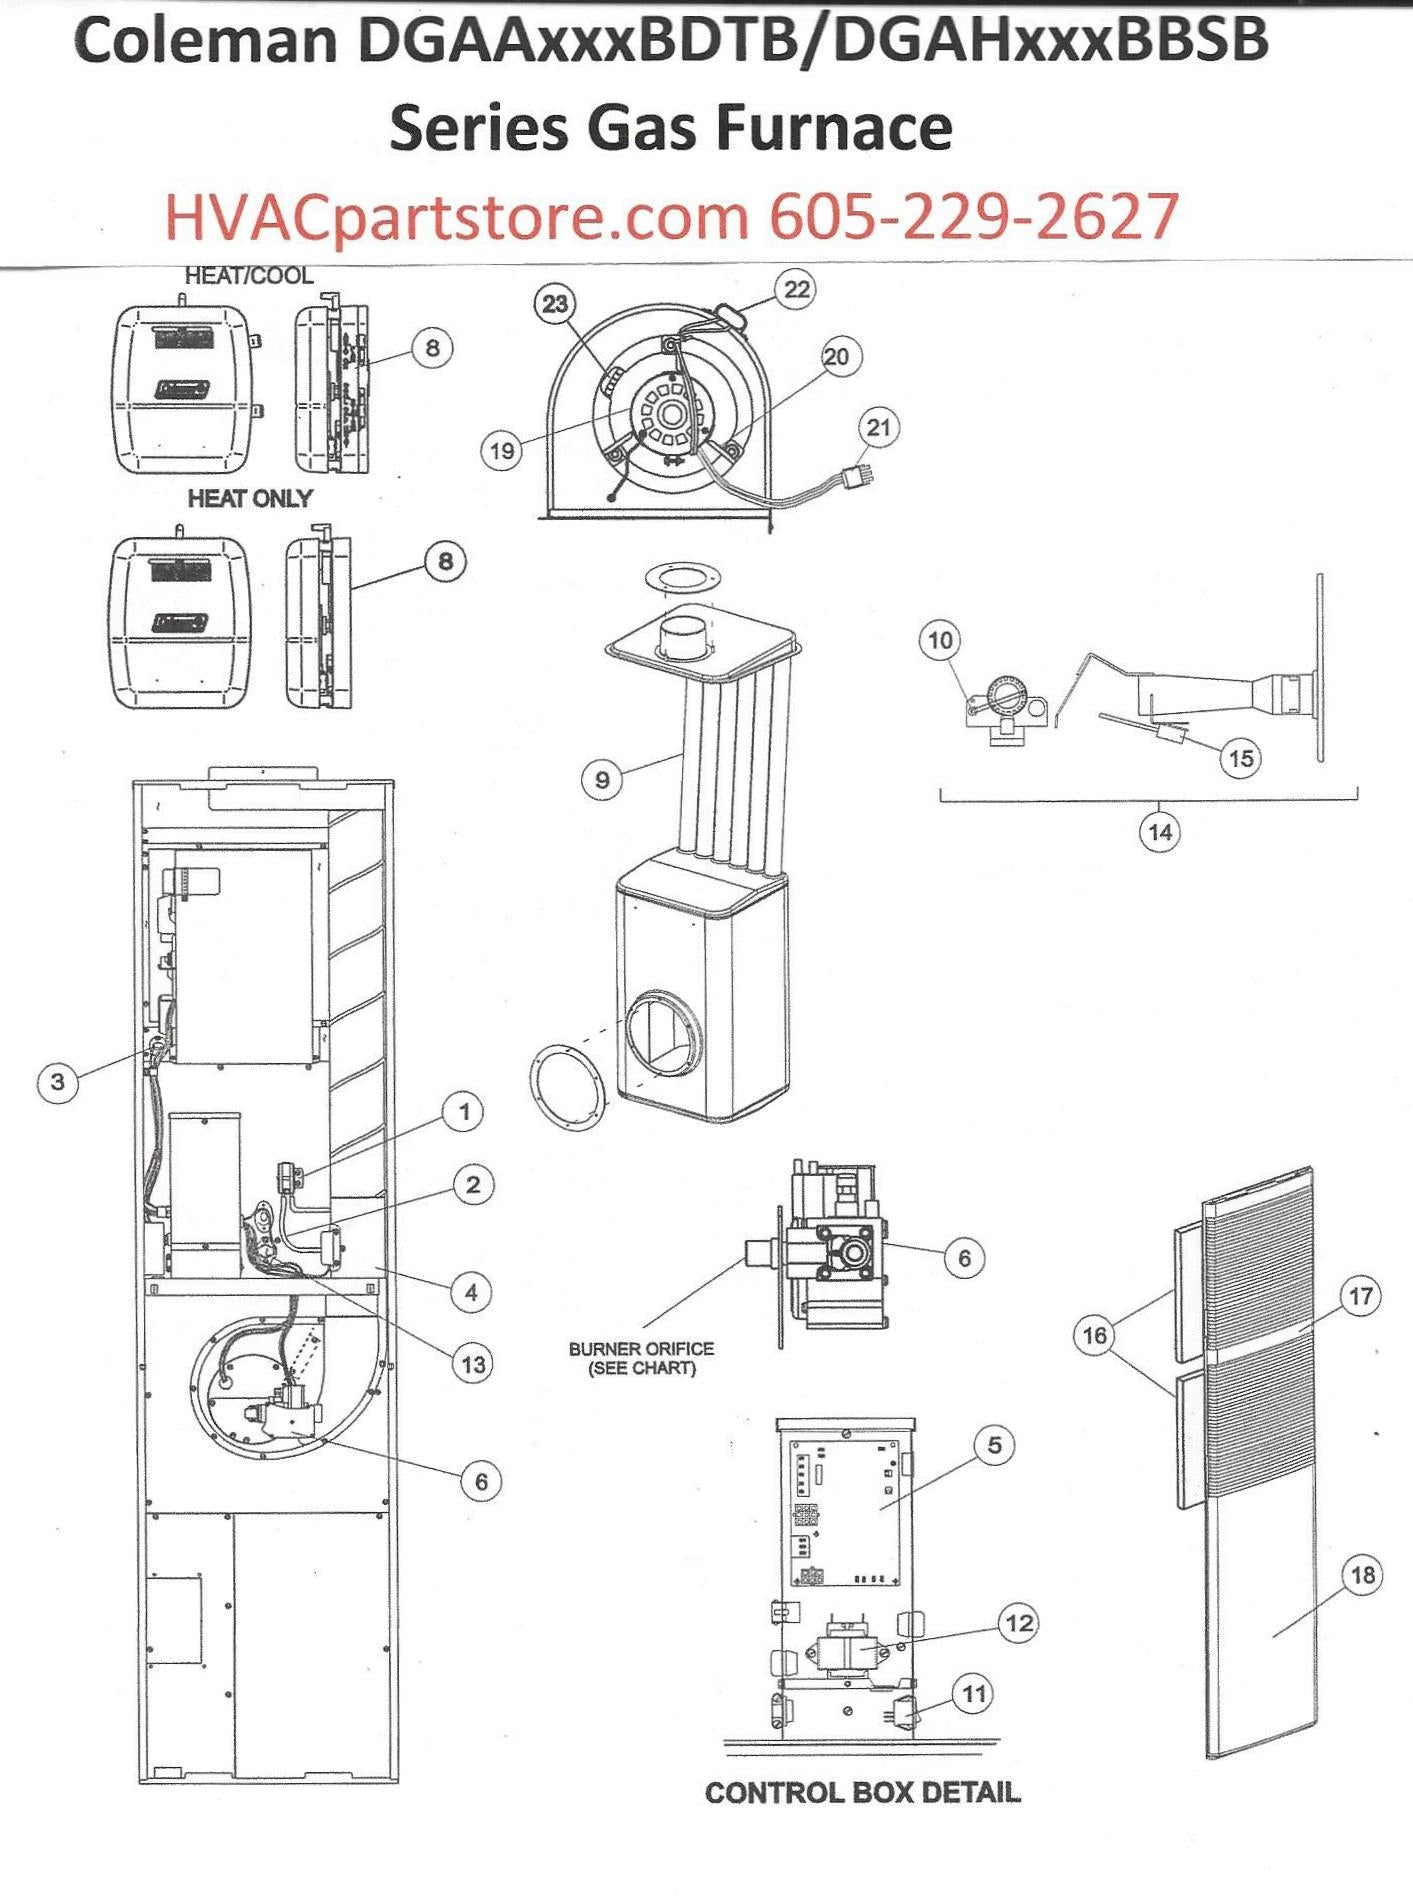 Coleman Gas Furnace Diagram Wiring Pictures Thermostat Dgaa077bdtb Parts Hvacpartstore Rh Myshopify Com Schematic